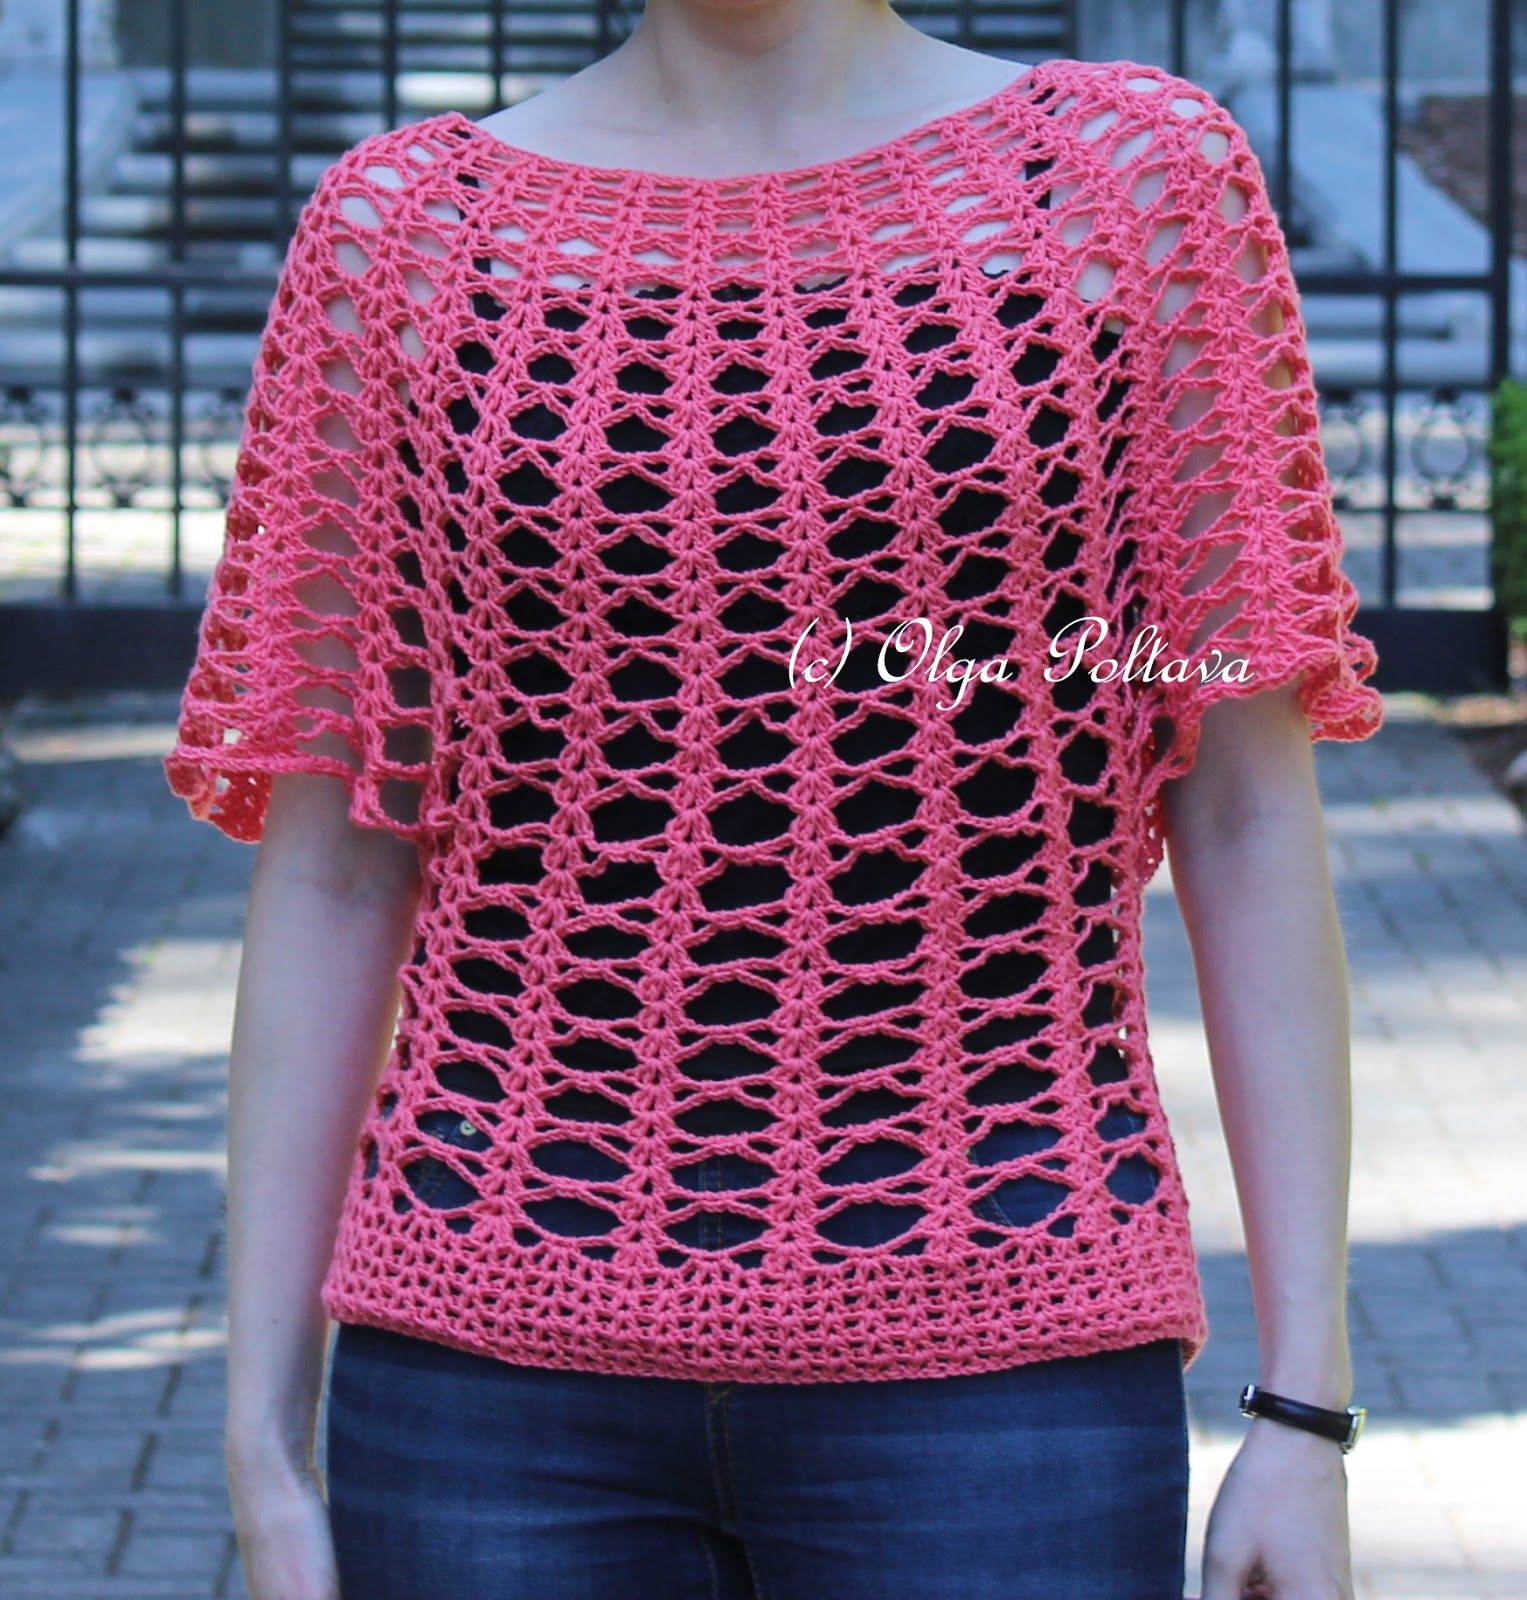 Lacy Crochet: Summer Lace Top, Cotton Fair by Premier Yarns